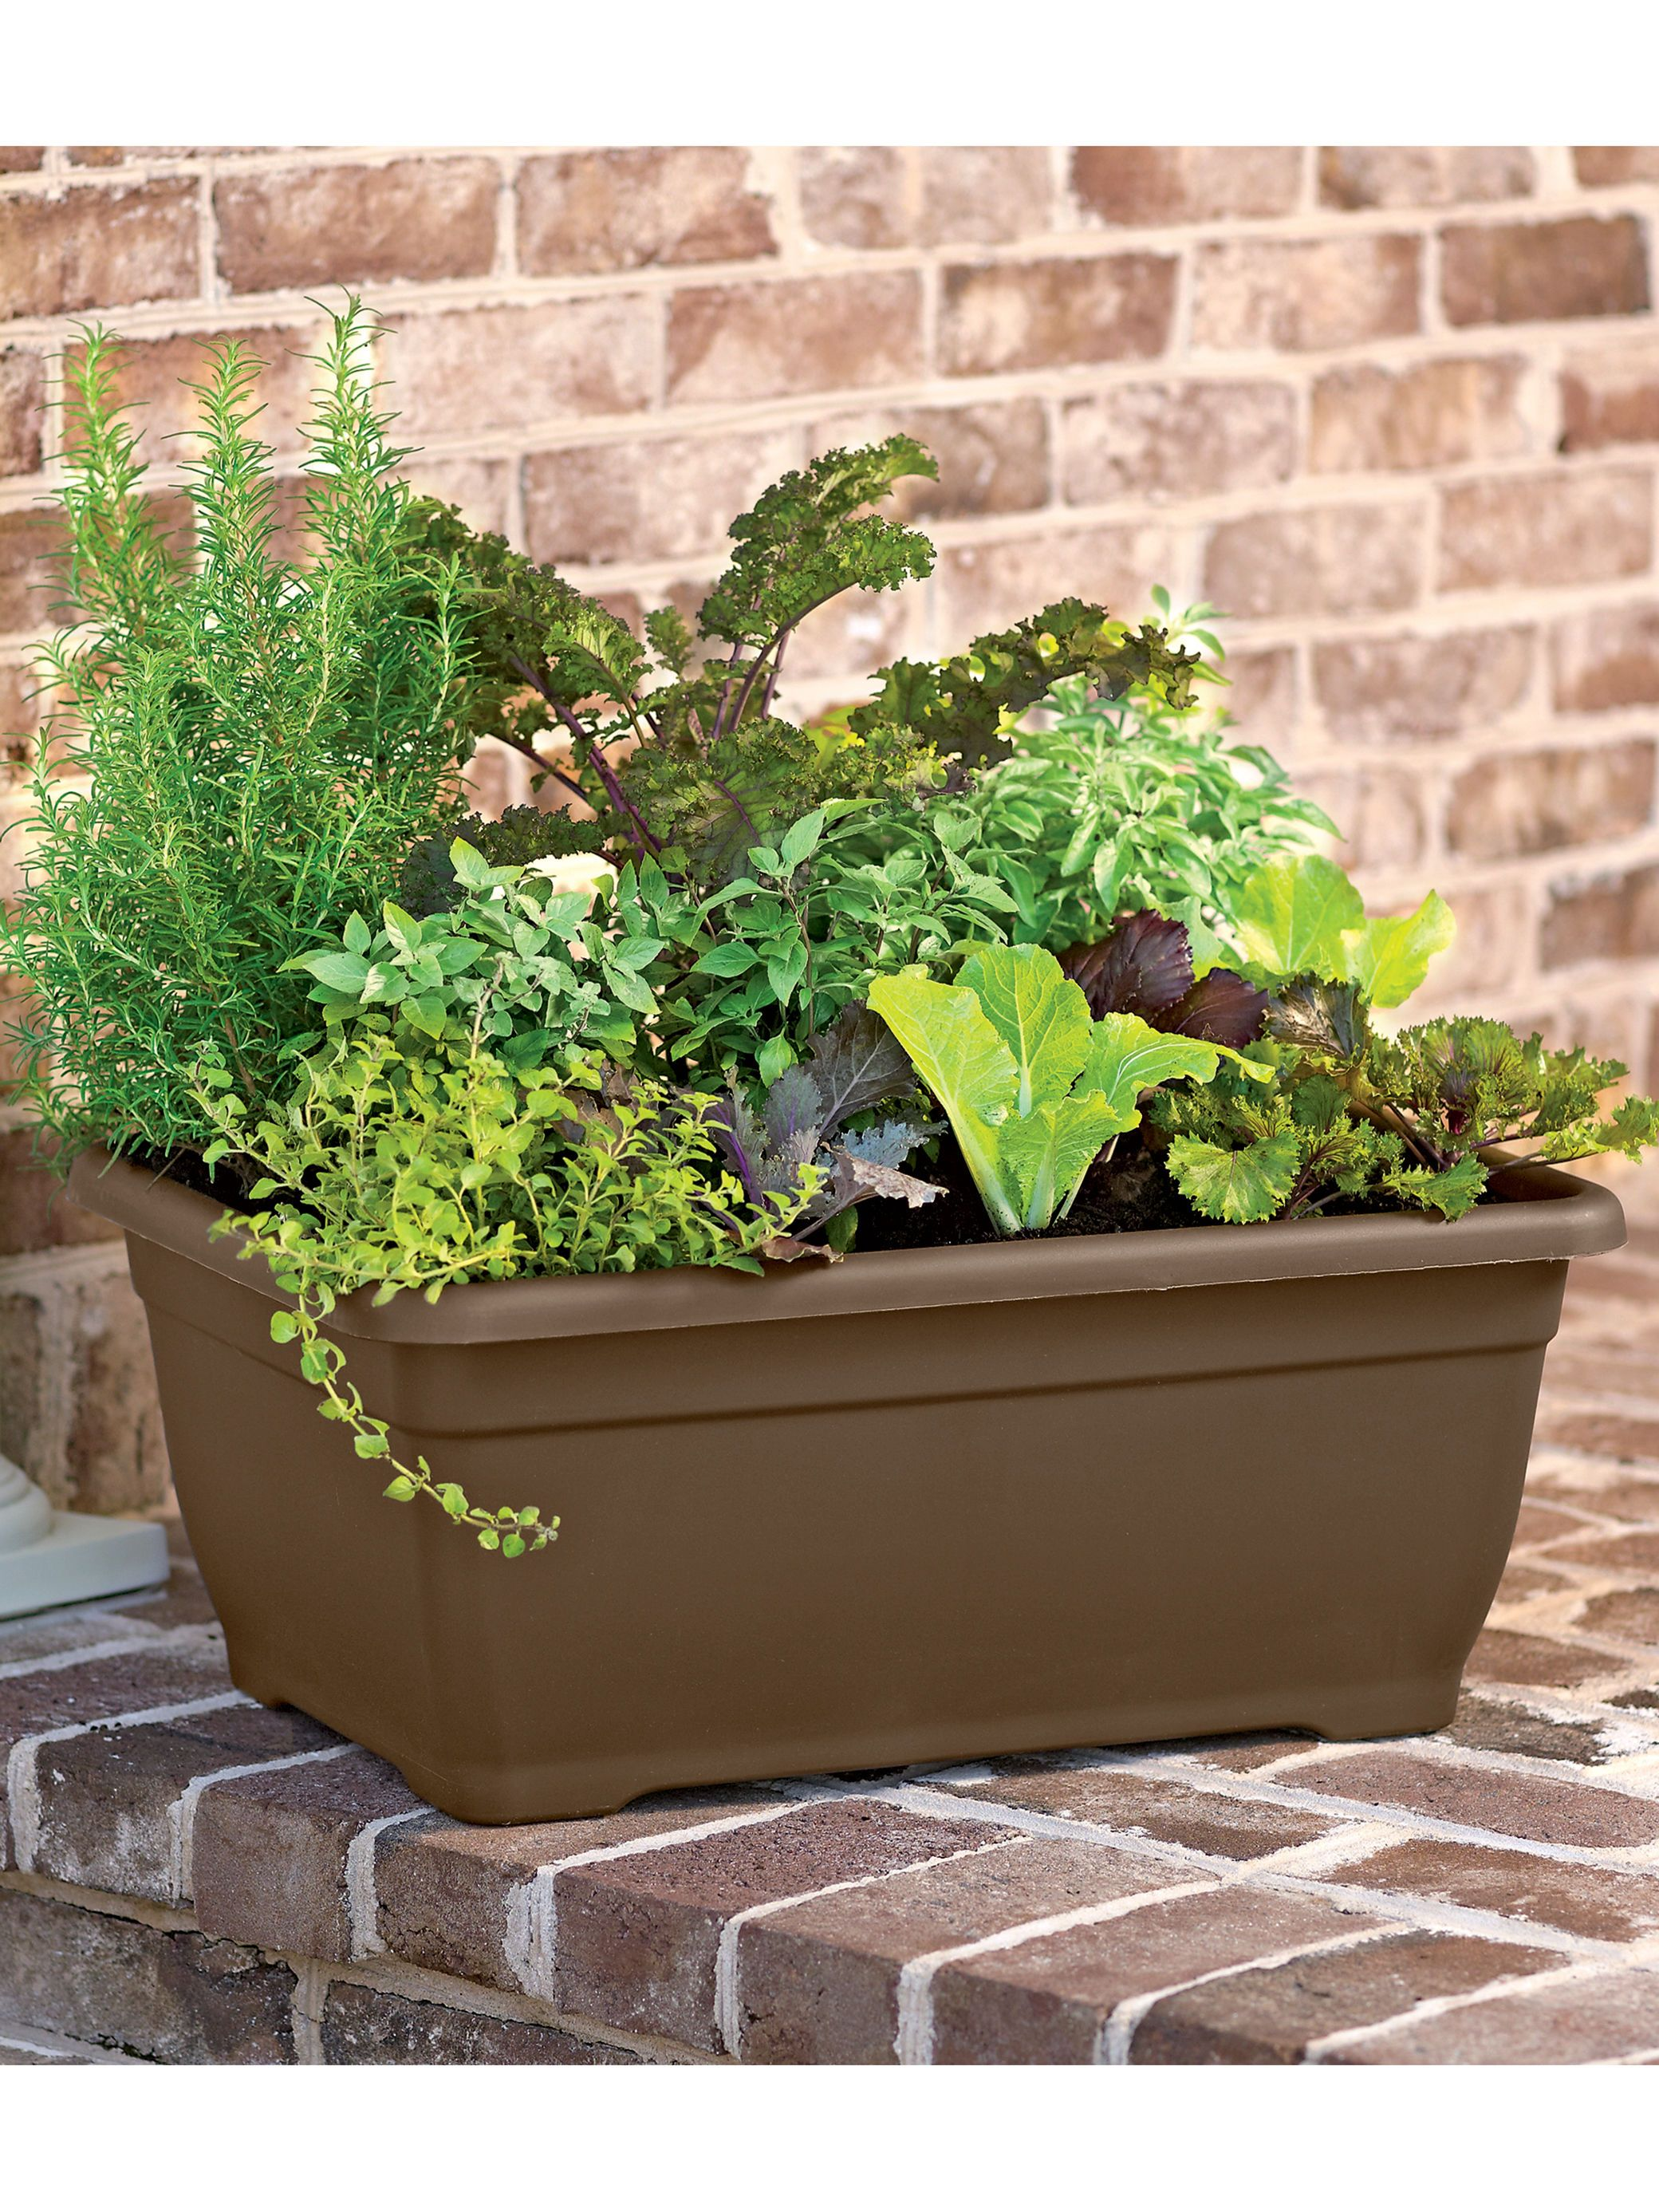 self simple a gardening moss natural garden planters vertical planter polypipe watering img wicking house large